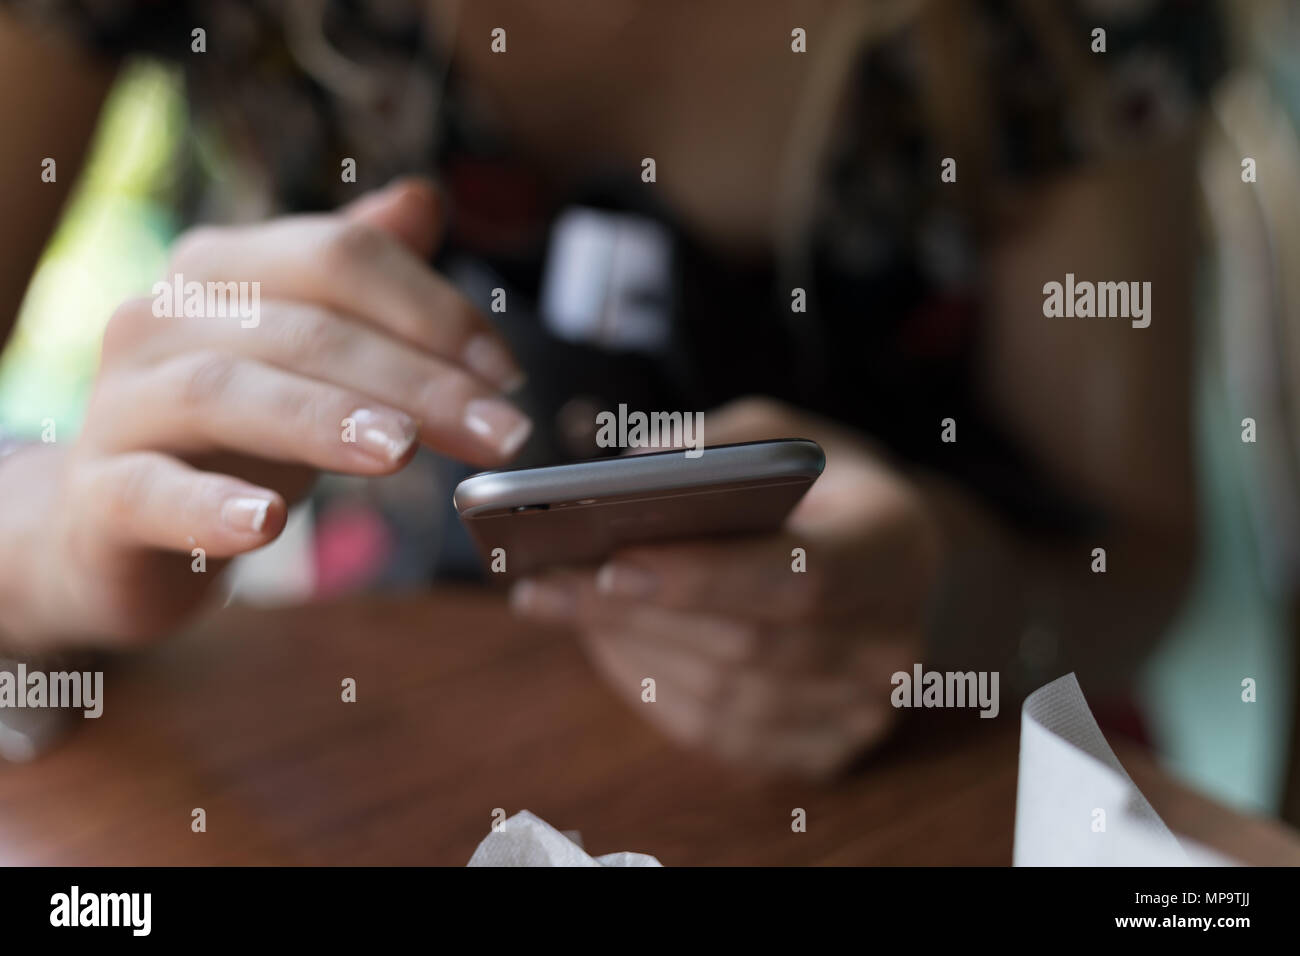 Girl hands holding mobile smart phone and dialing and digiting on the screen. - Stock Image